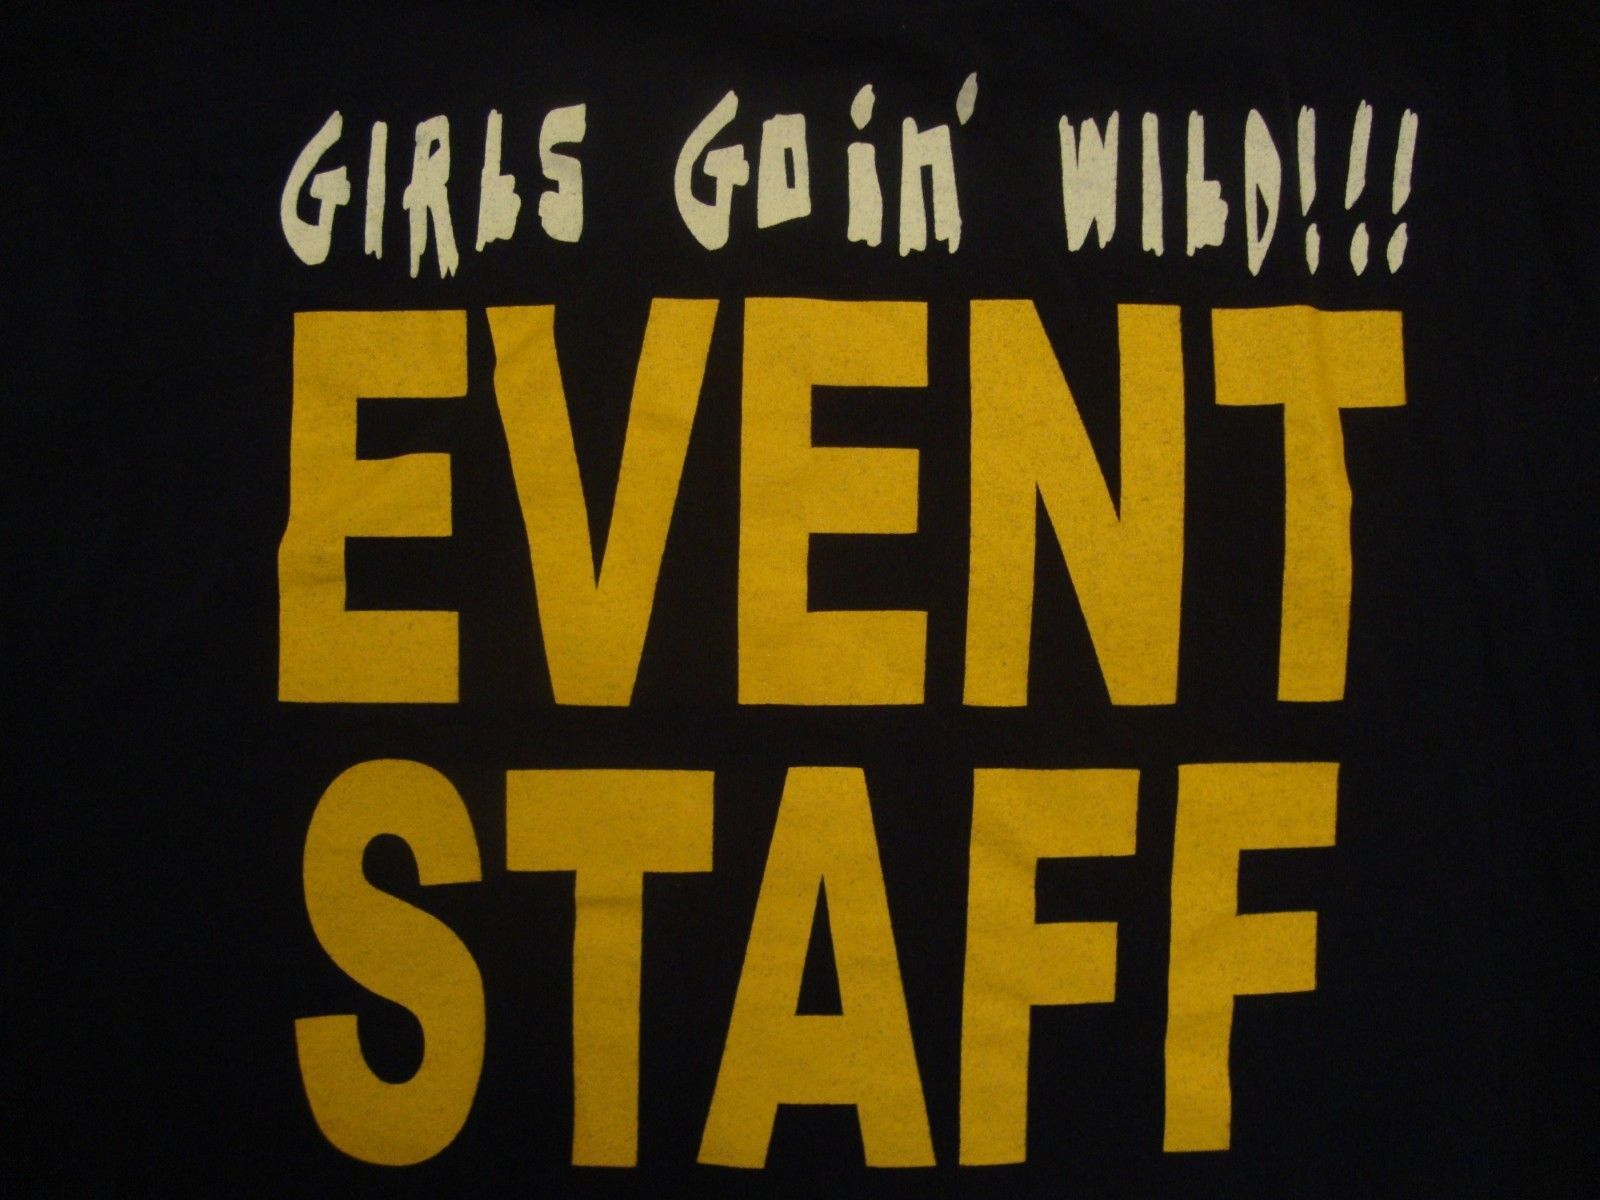 Primary image for Girls Goin' Wild!!! Event staff blue t shirt size M